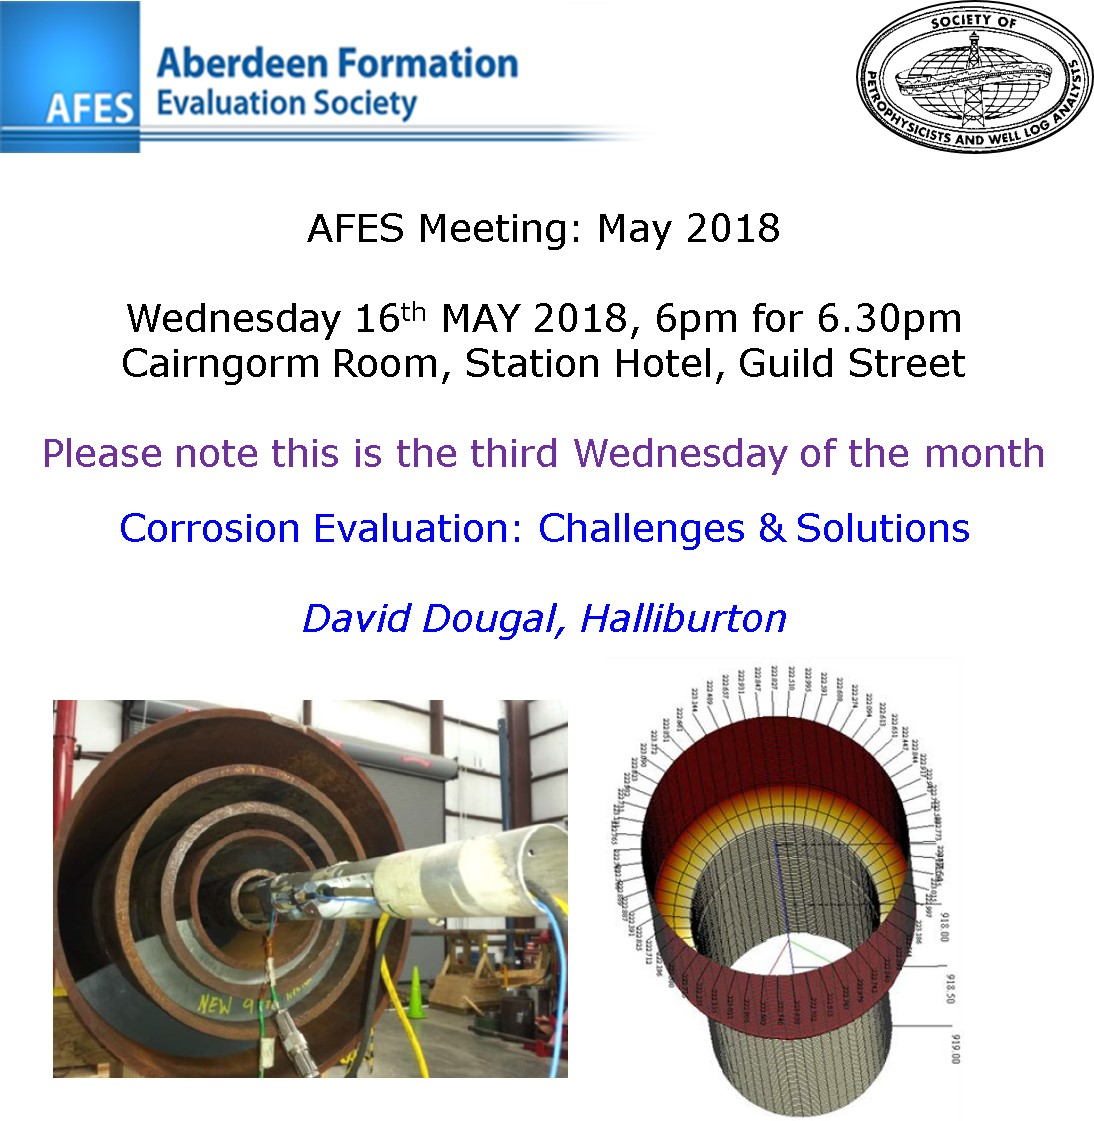 AFES Meeting: 16th May, 2018